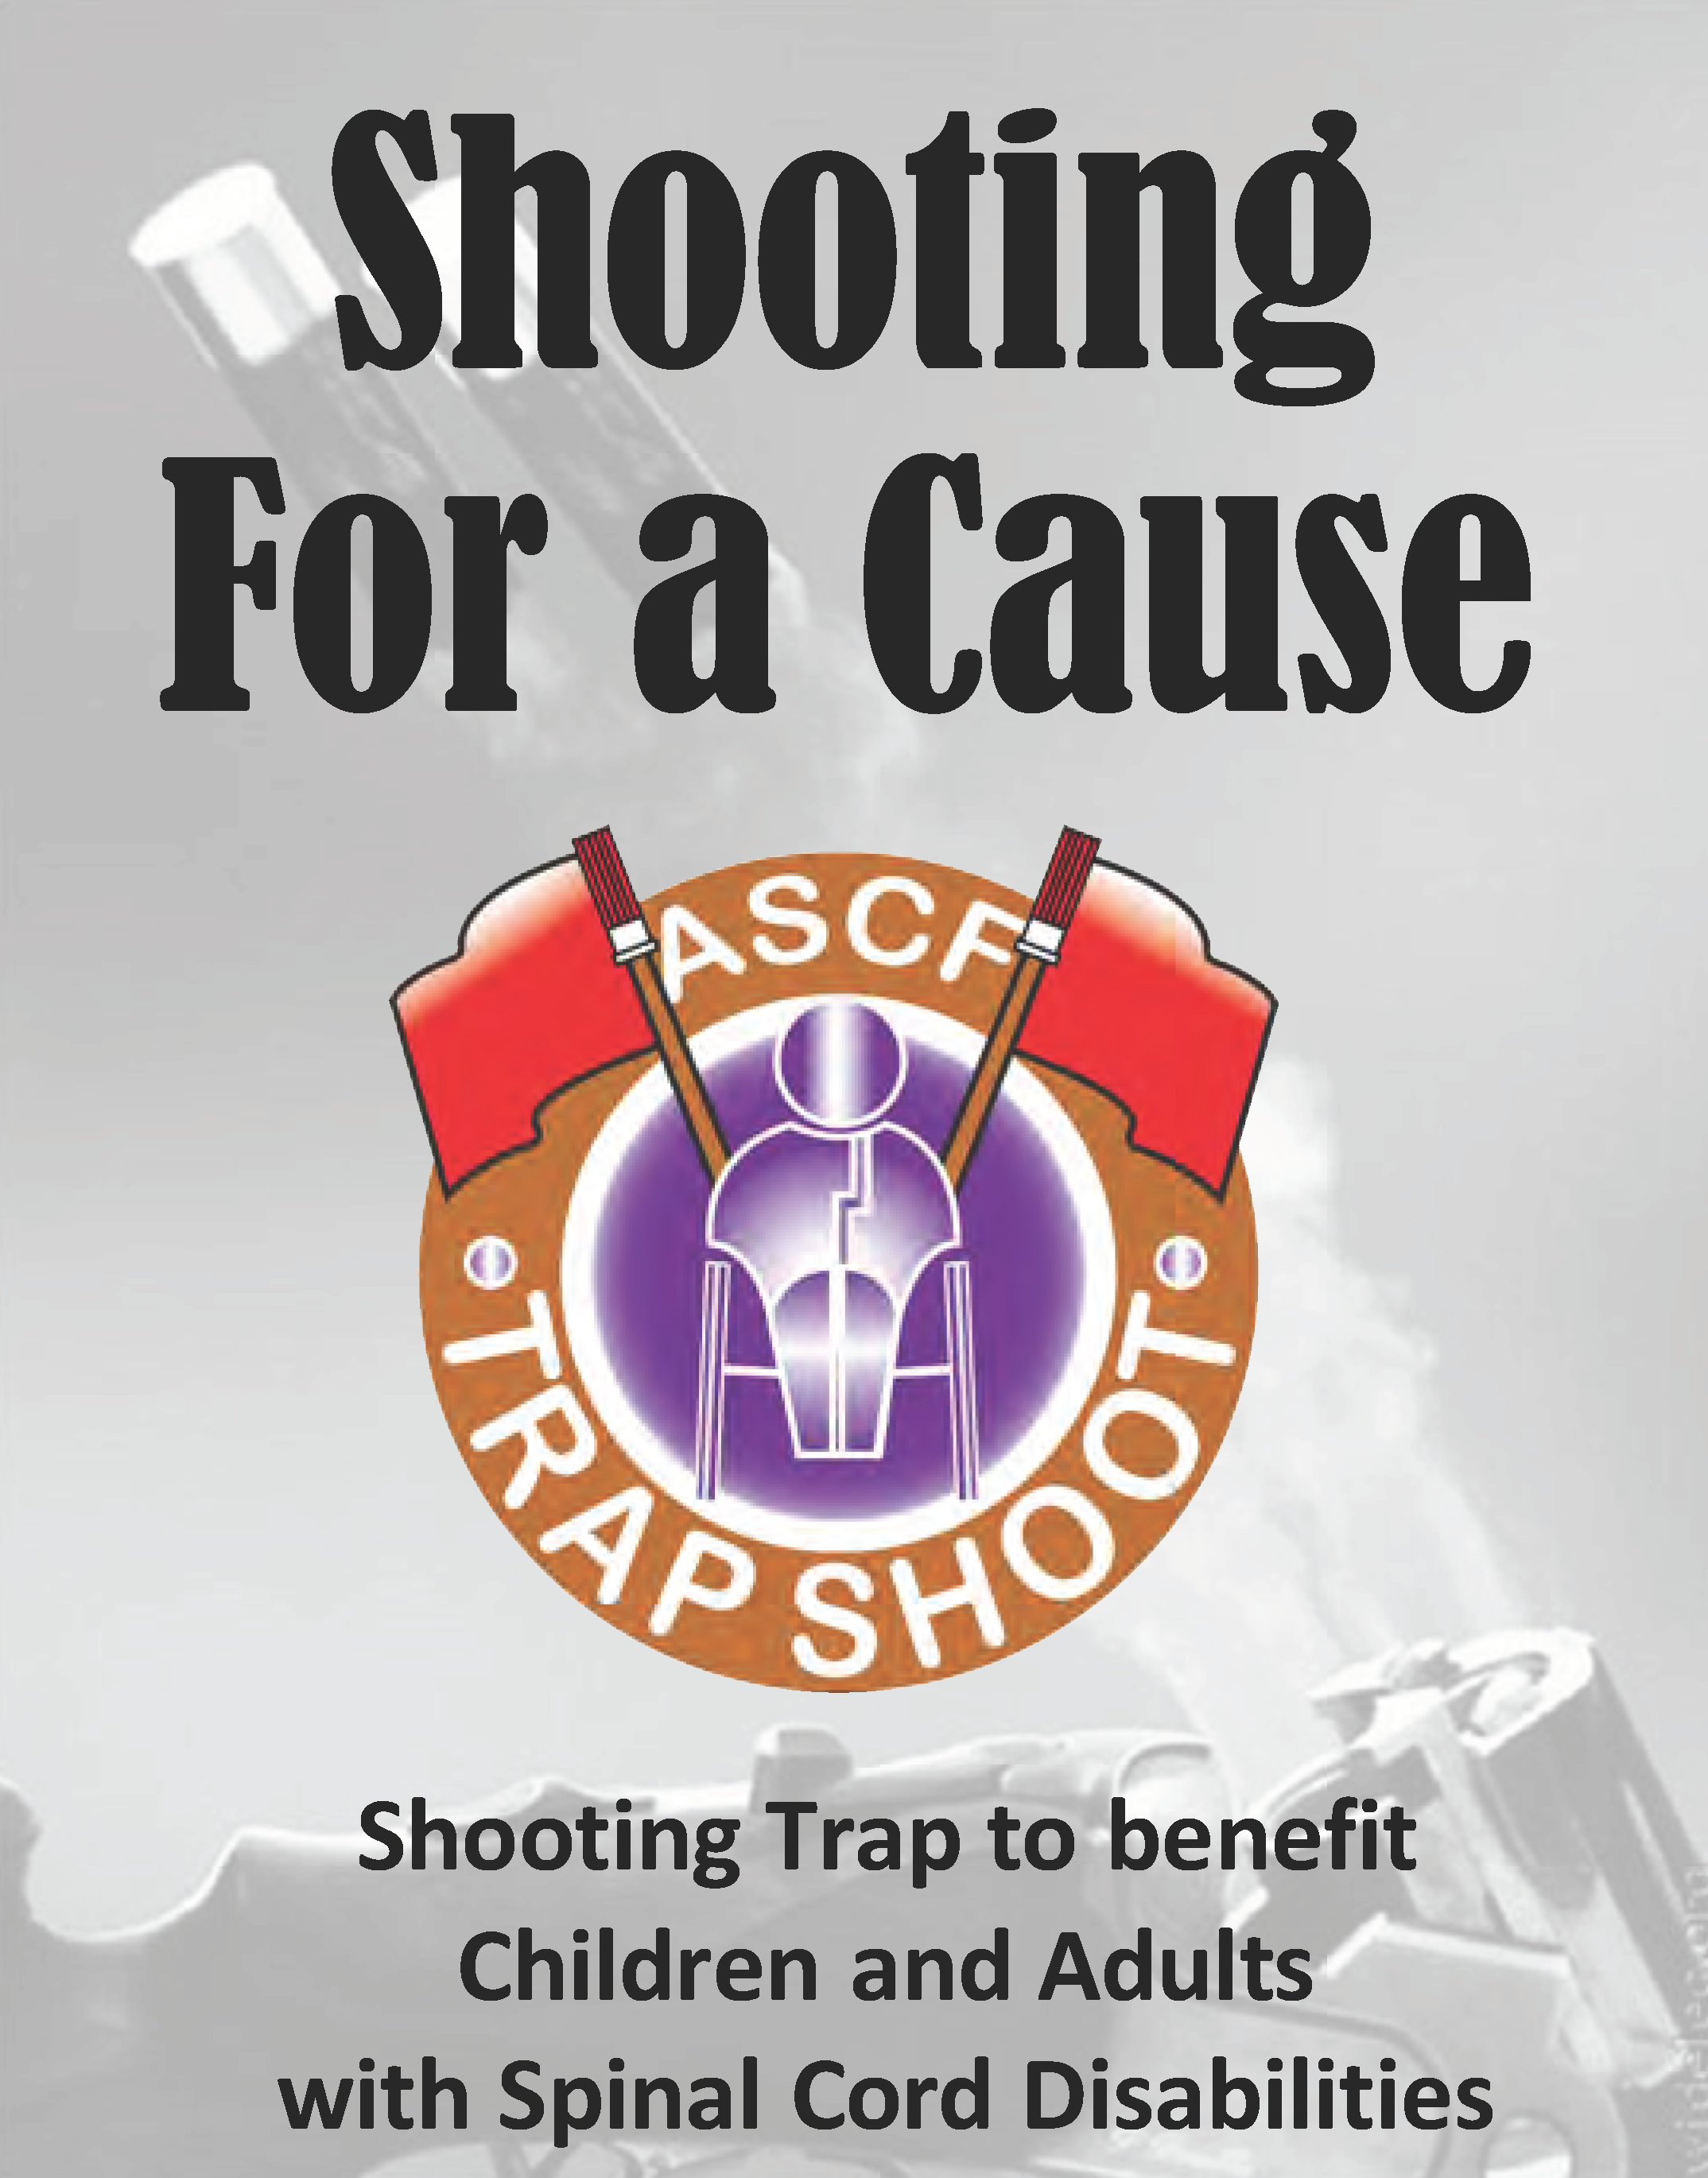 Shooting for a Cause